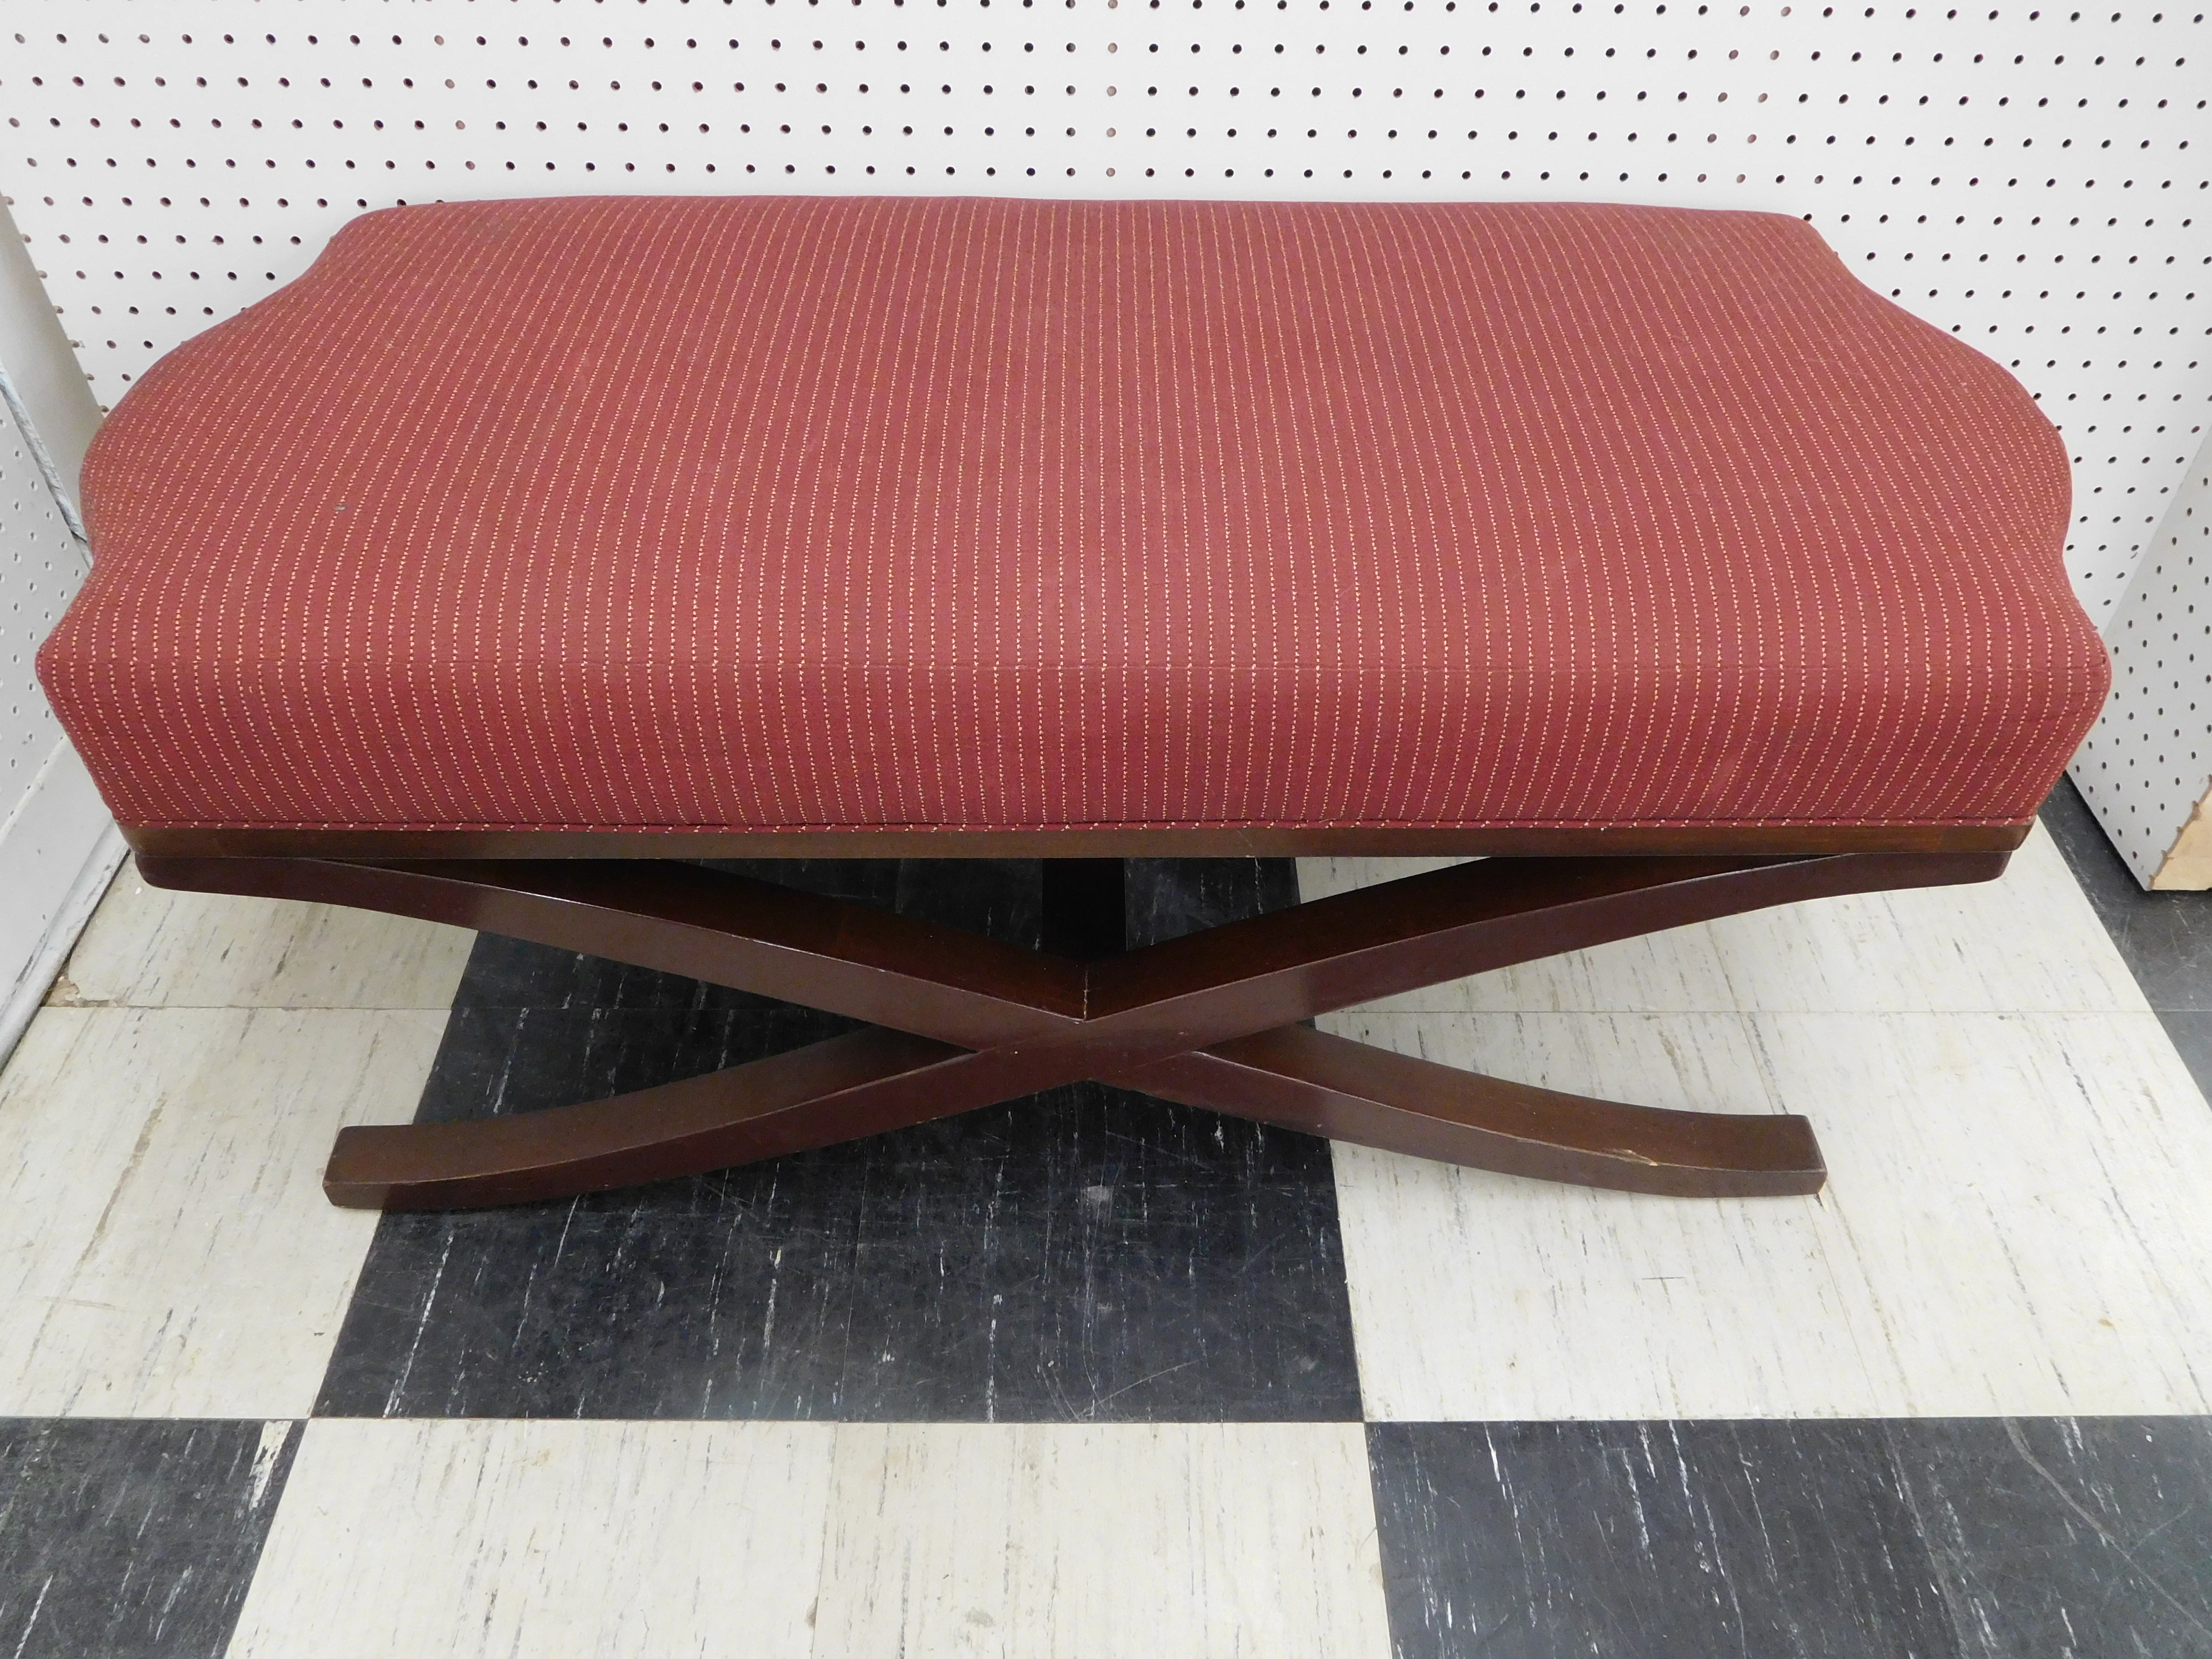 Vintage Wood Bench with Red Upholstery